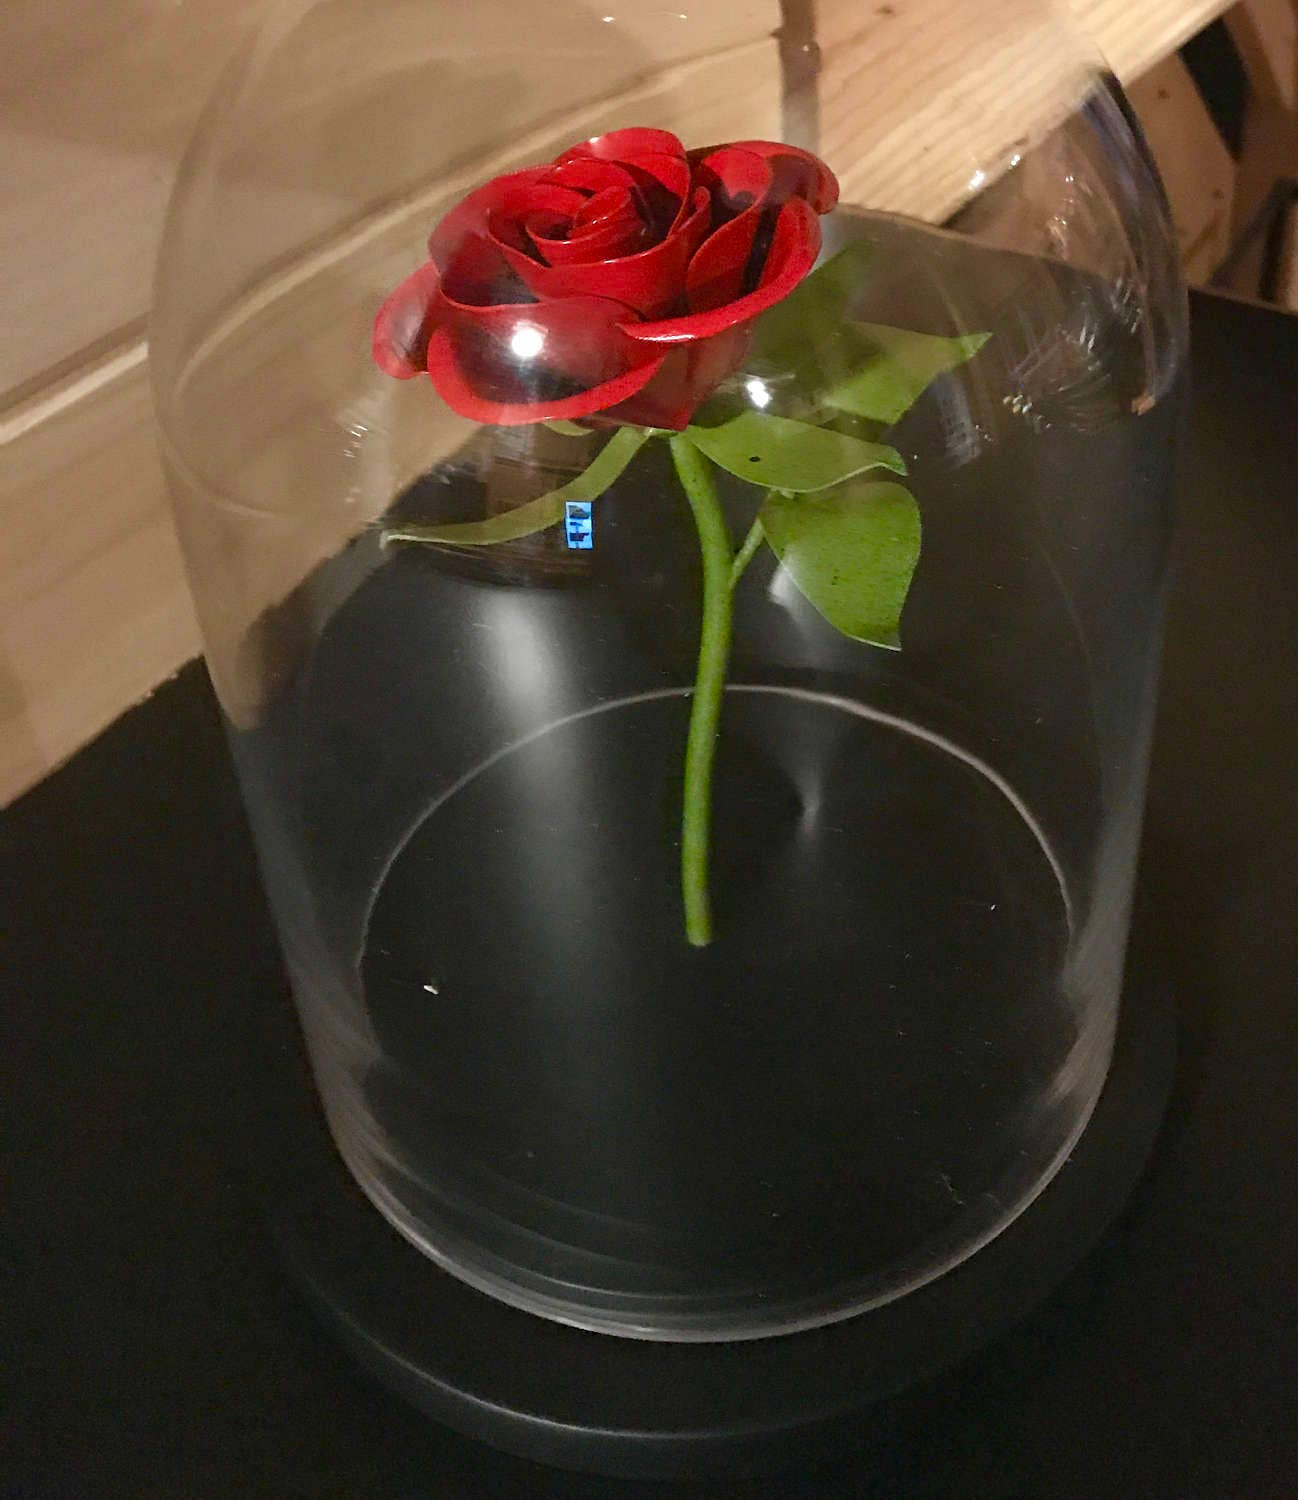 Enchanted metal rose sculpture beauty and the beast a tale as old gallery photo gallery photo gallery photo gallery photo izmirmasajfo Choice Image